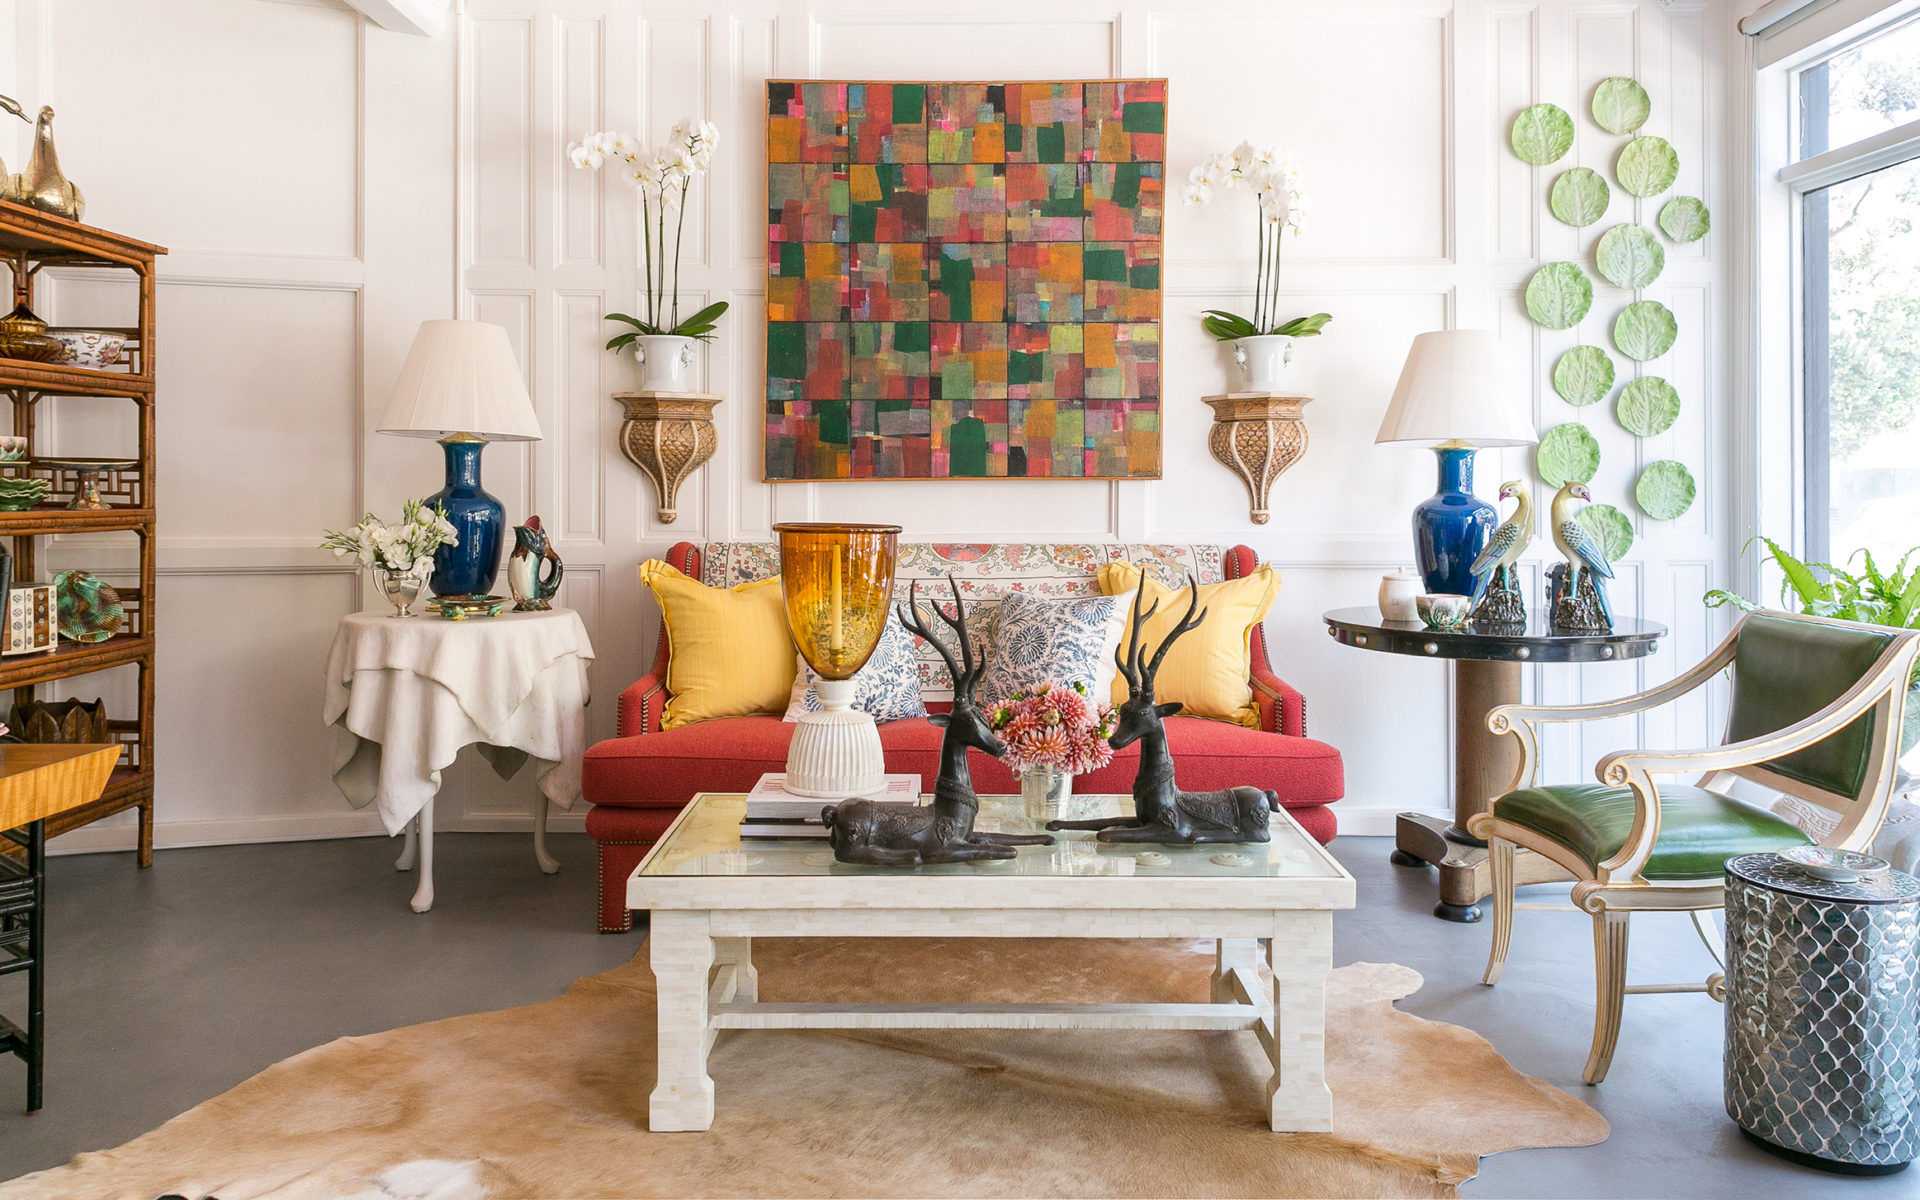 Decoration Is The New Must Visit Boutique In San Francisco